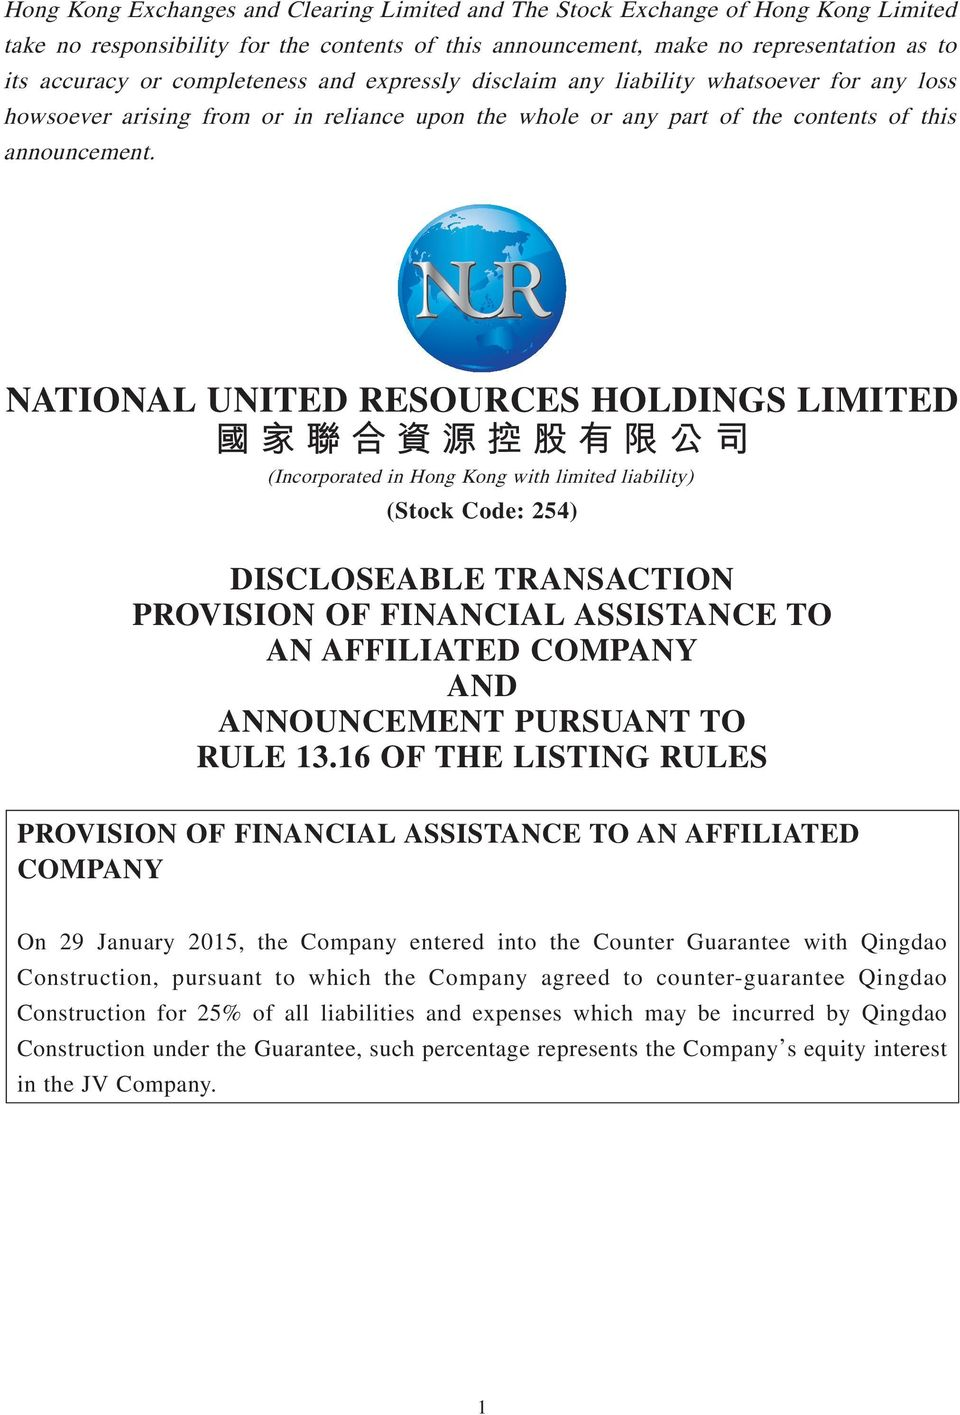 NATIONAL UNITED RESOURCES HOLDINGS LIMITED (Incorporated in Hong Kong with limited liability) (Stock Code: 254) DISCLOSEABLE TRANSACTION PROVISION OF FINANCIAL ASSISTANCE TO AN AFFILIATED COMPANY AND